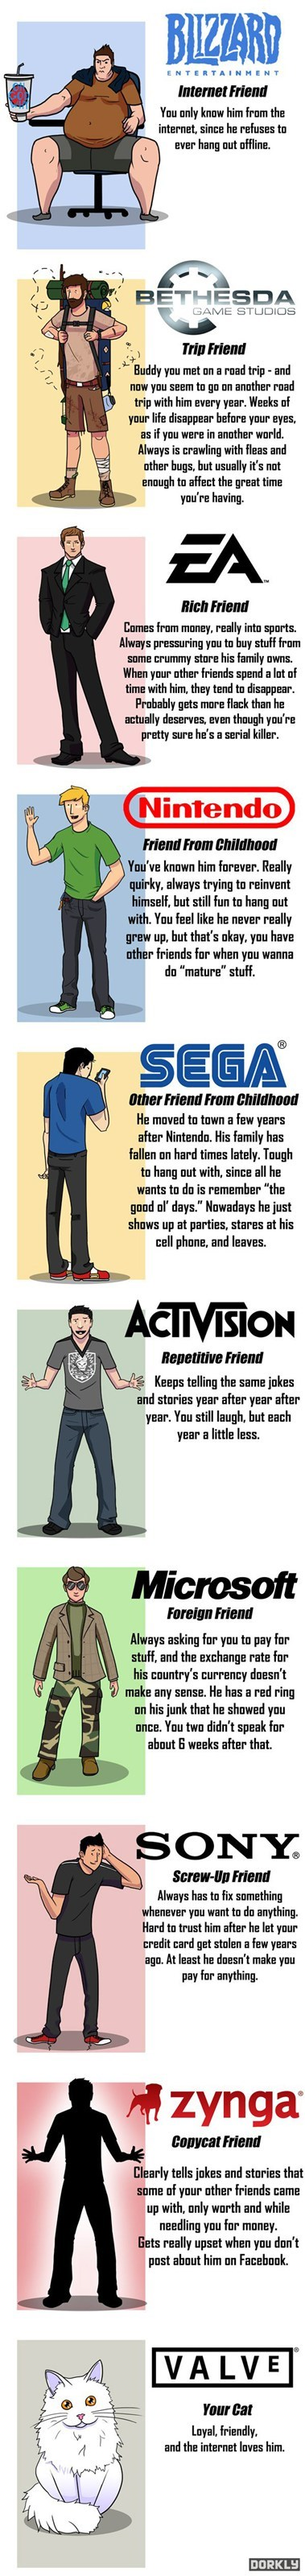 If You Knew Video Game Companies IRL